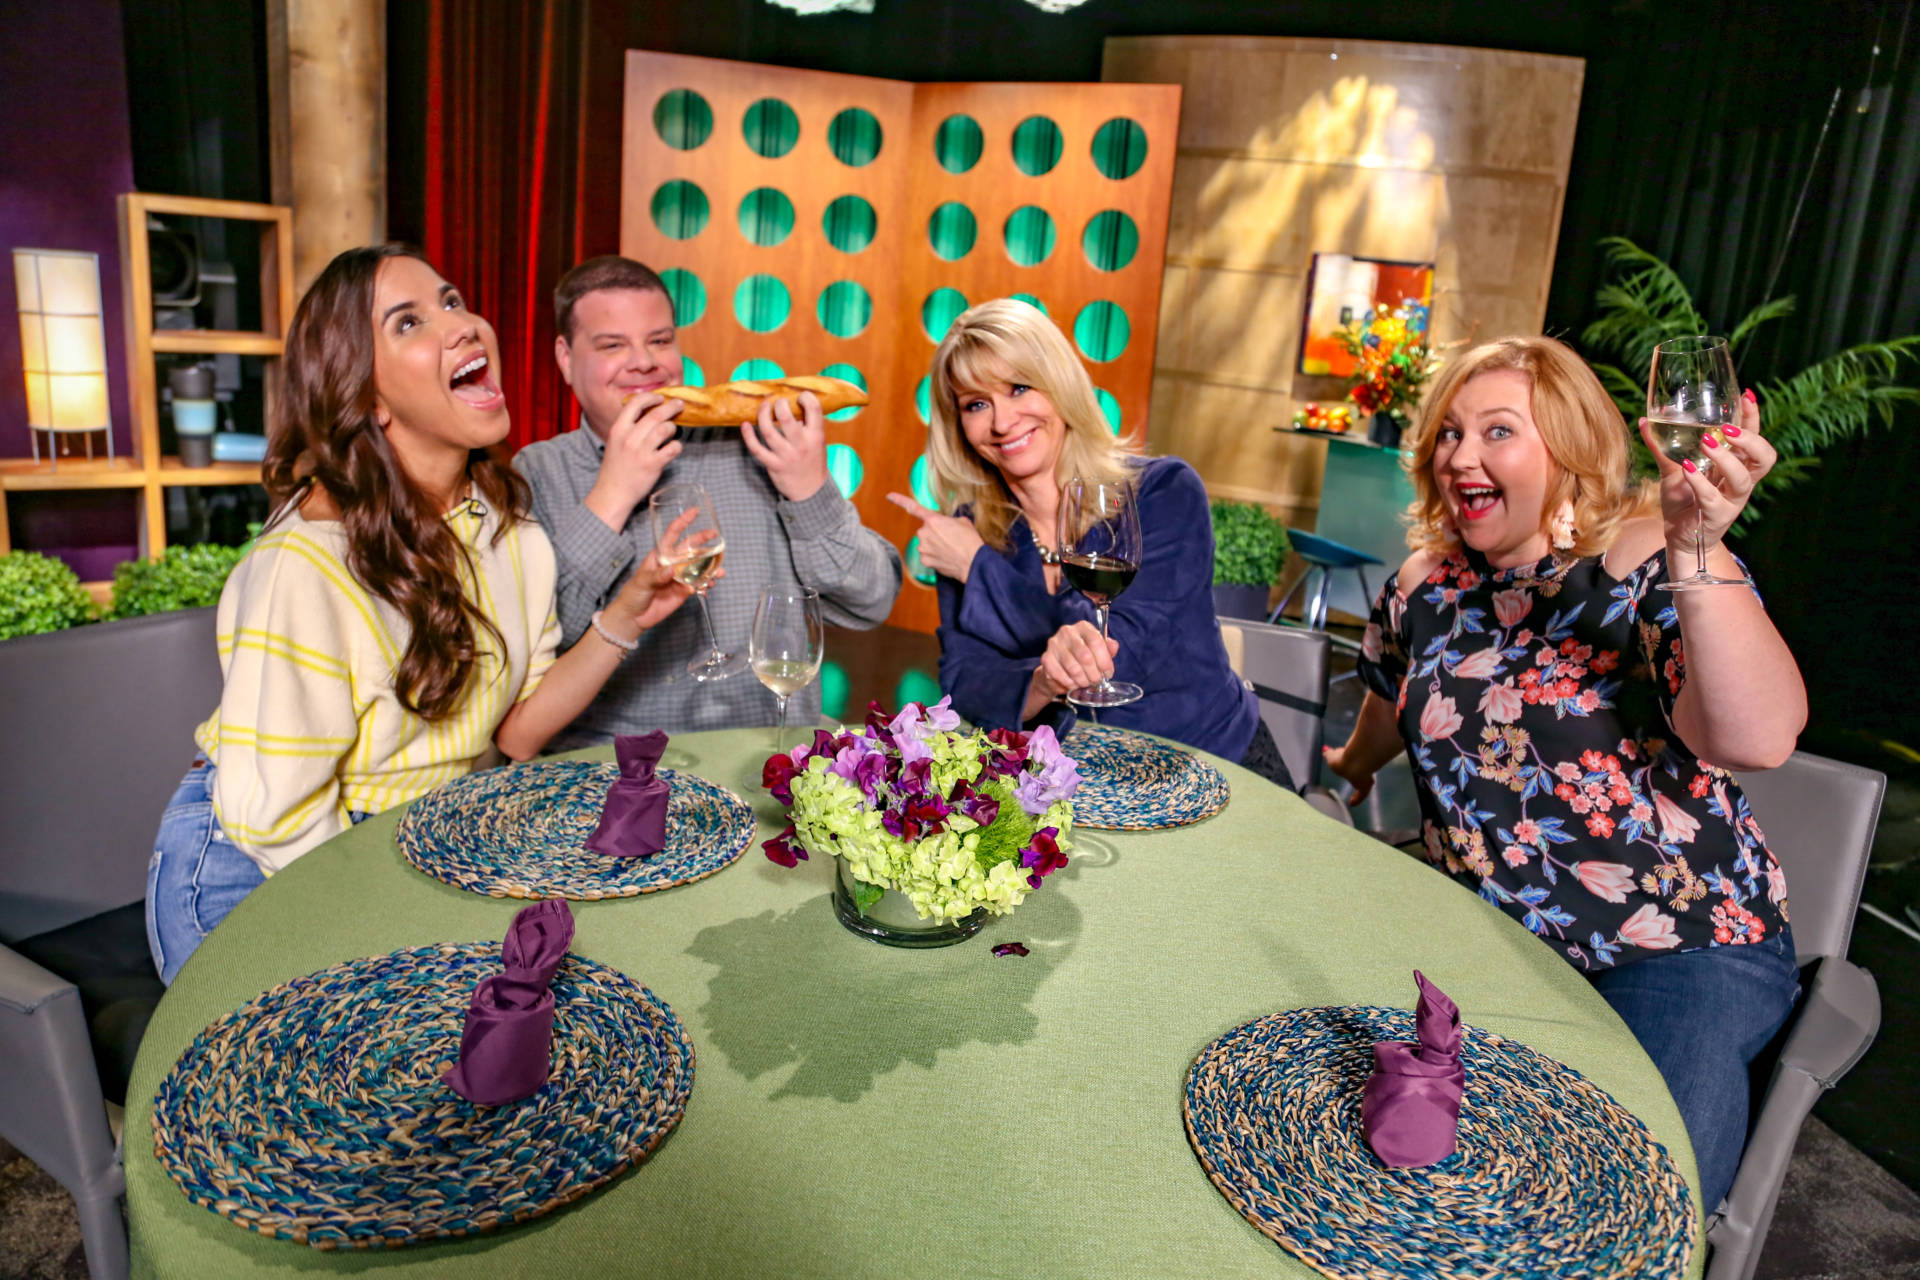 Host Leslie Sbrocco and guests on the set of season 13 episode 13.